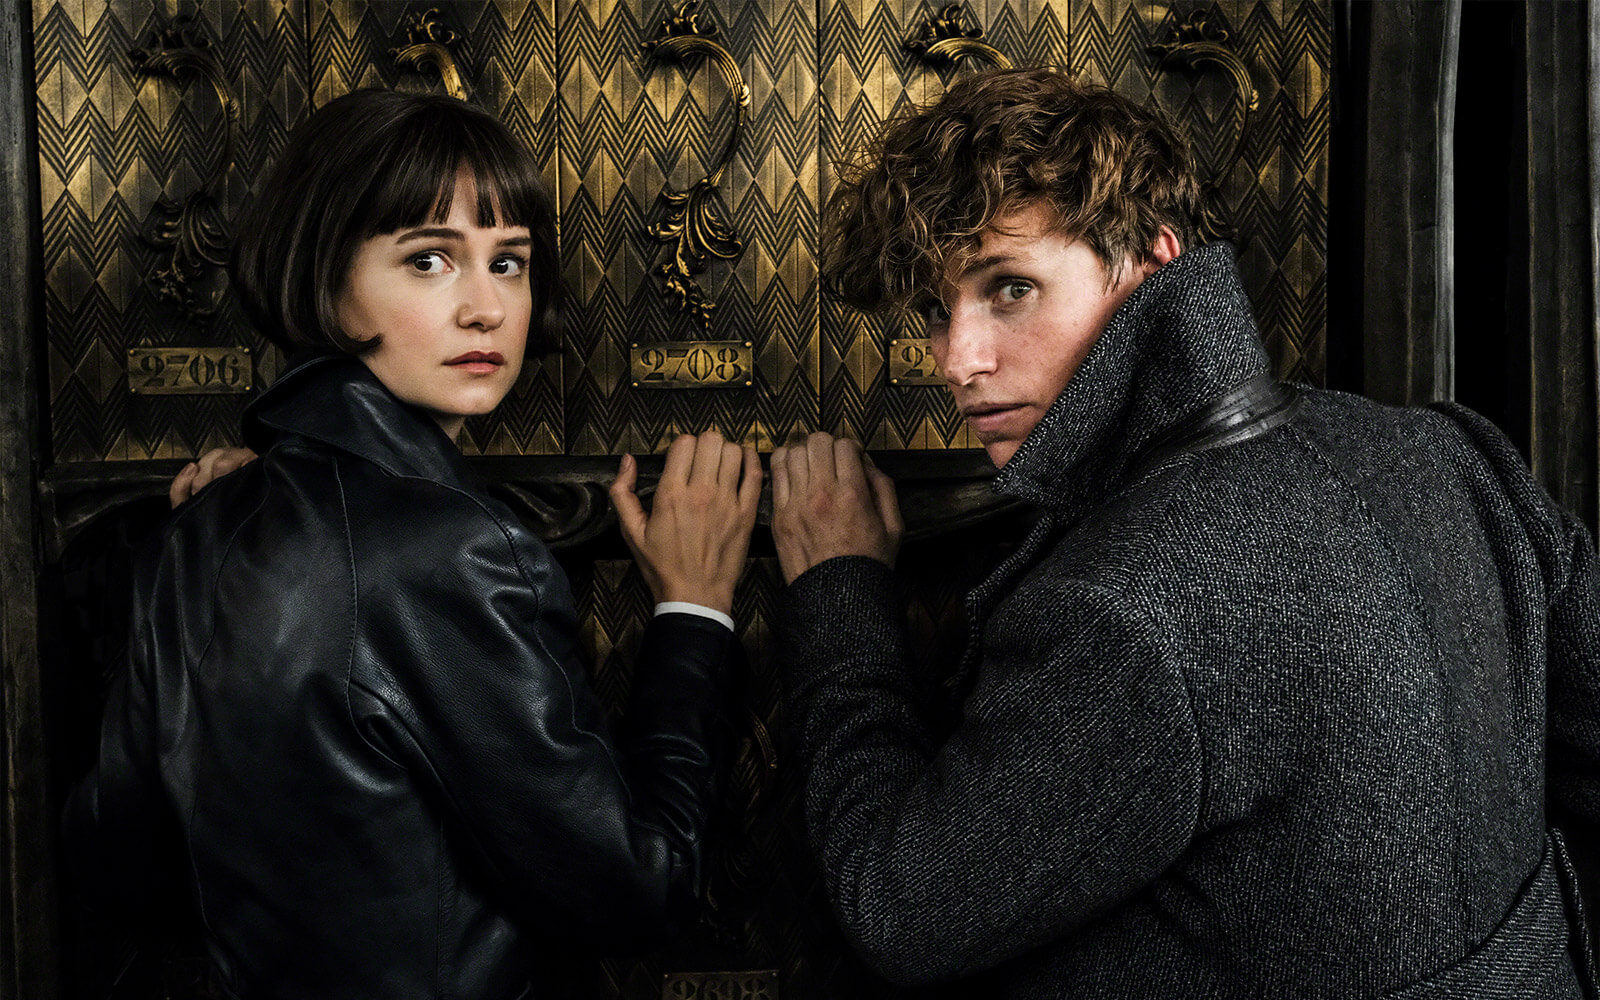 Katherine Waterston and Eddie Redmayne in FANTASTIC BEASTS: THE CRIMES OF GRINDELWALD (2018)